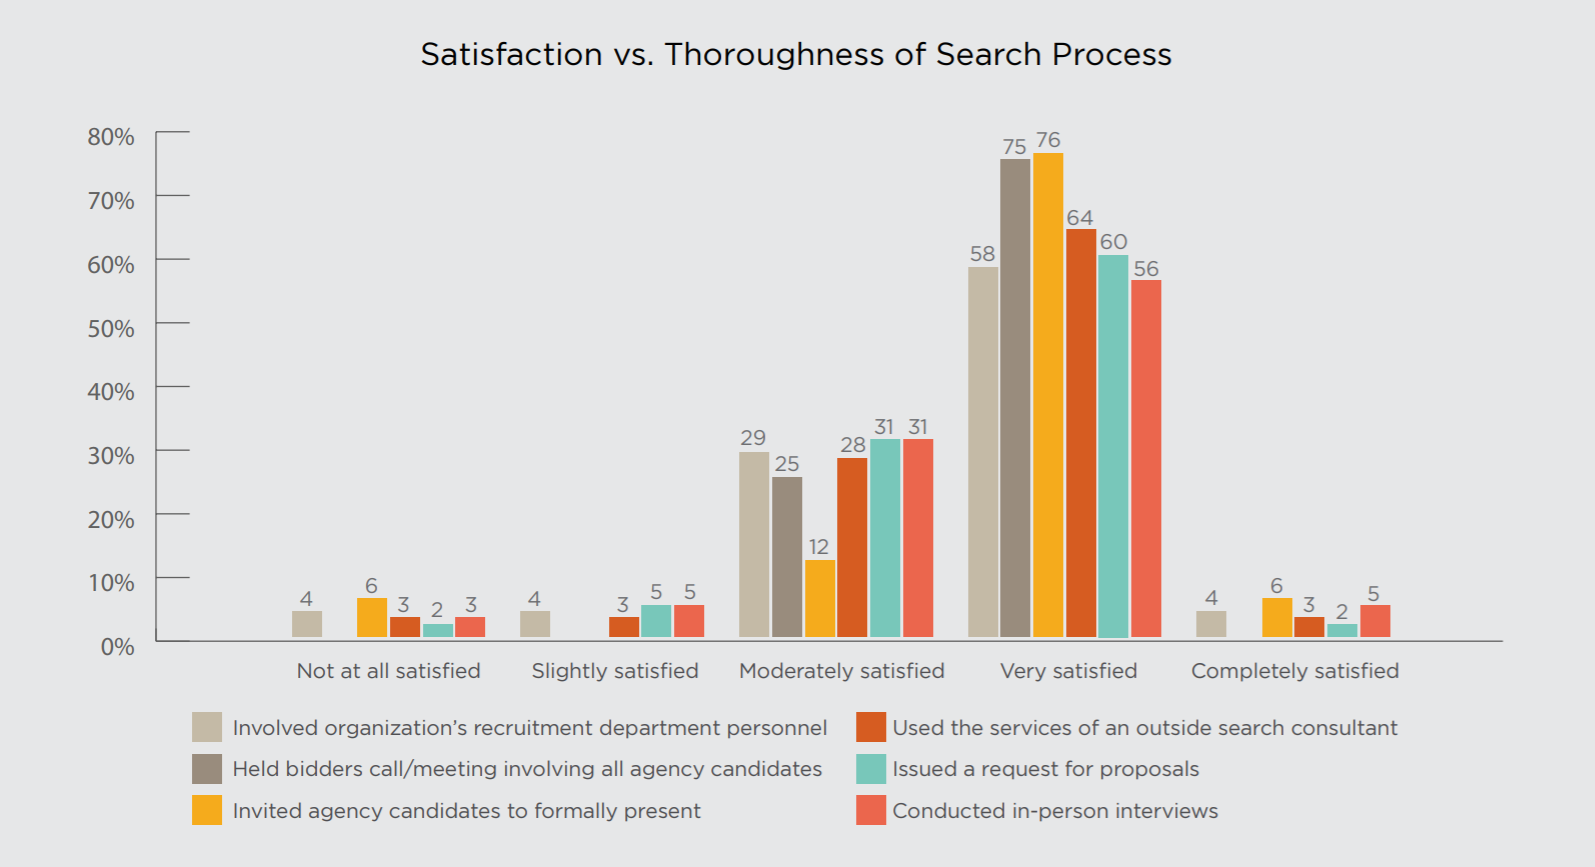 RFPs and Agency Satisfaction